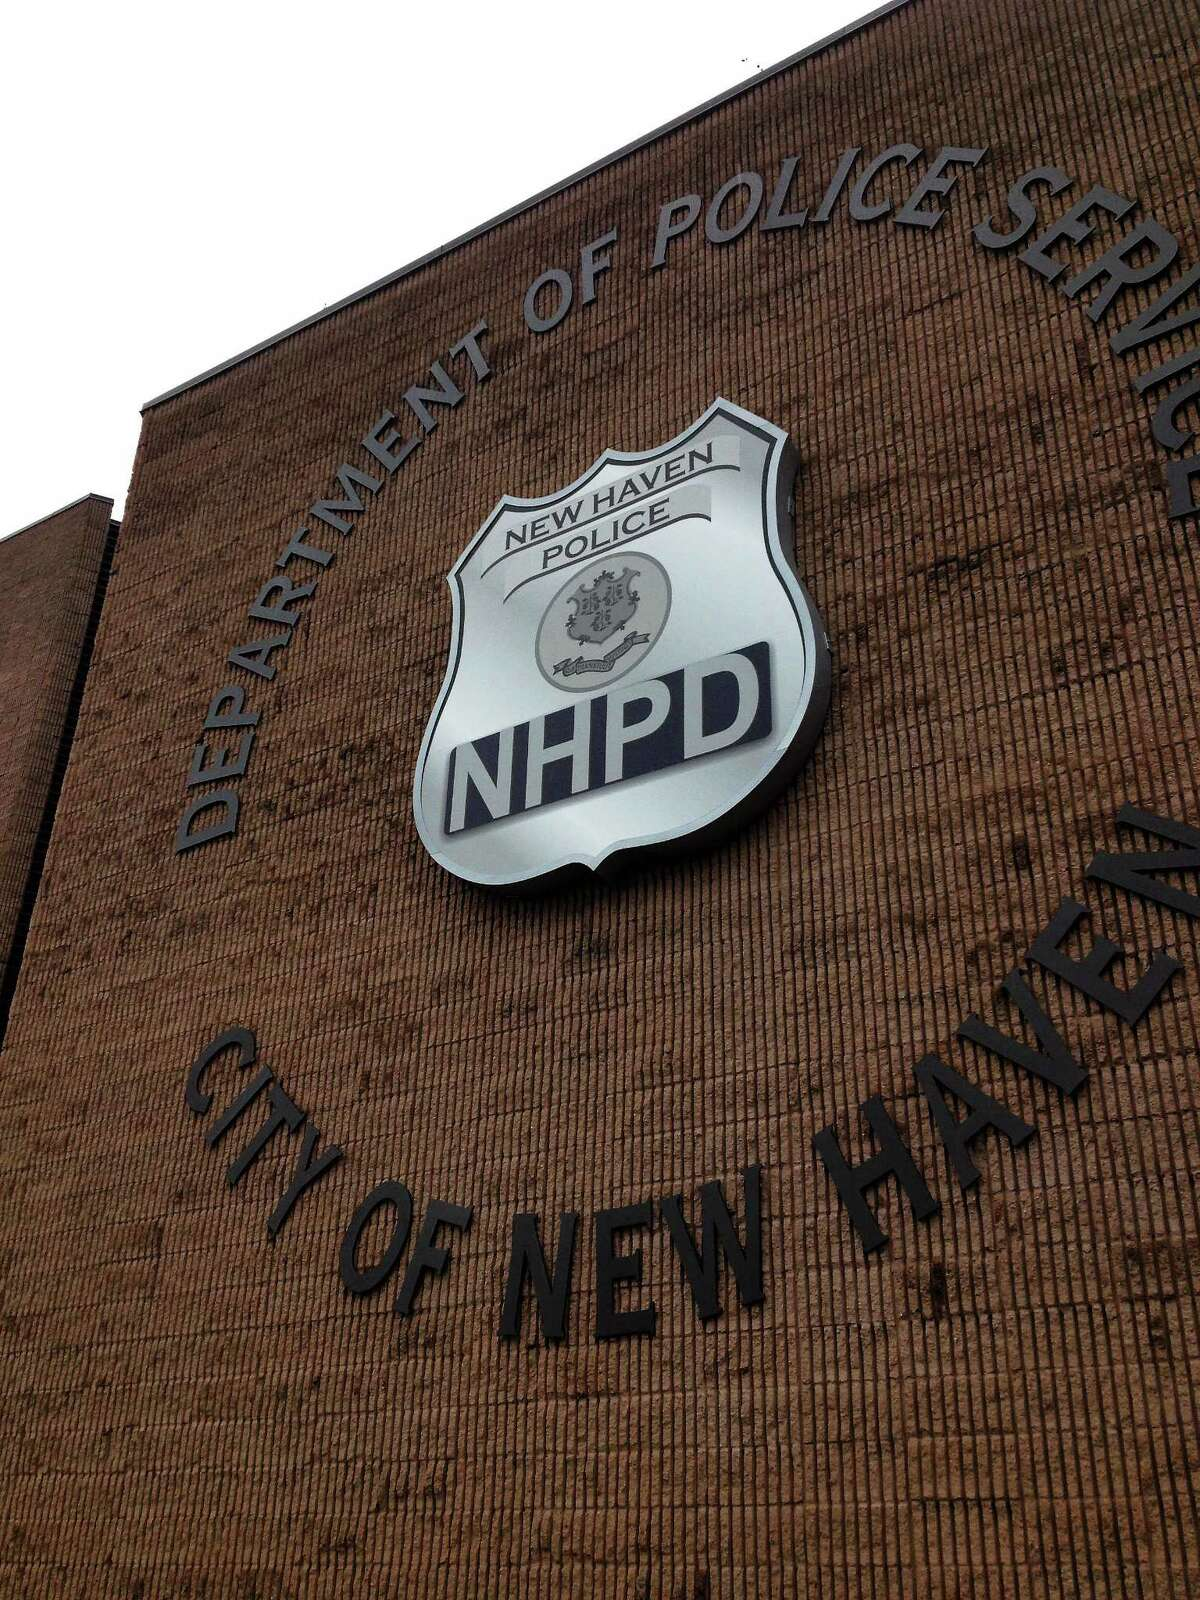 New Haven Police Department